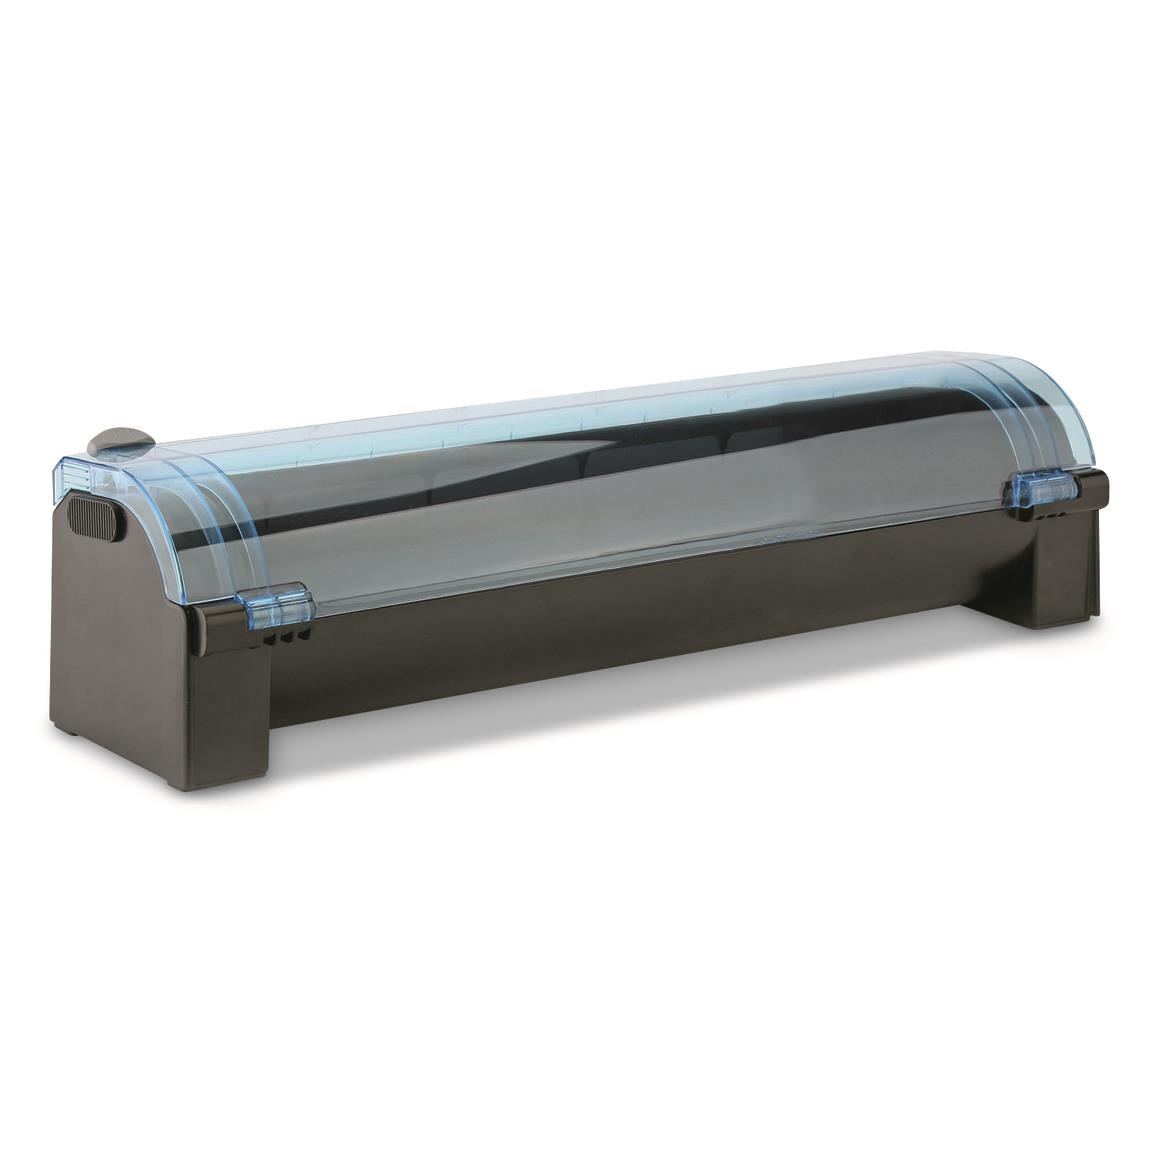 "Excalibur 12"" Vacuum Sealer Roll Cutter"